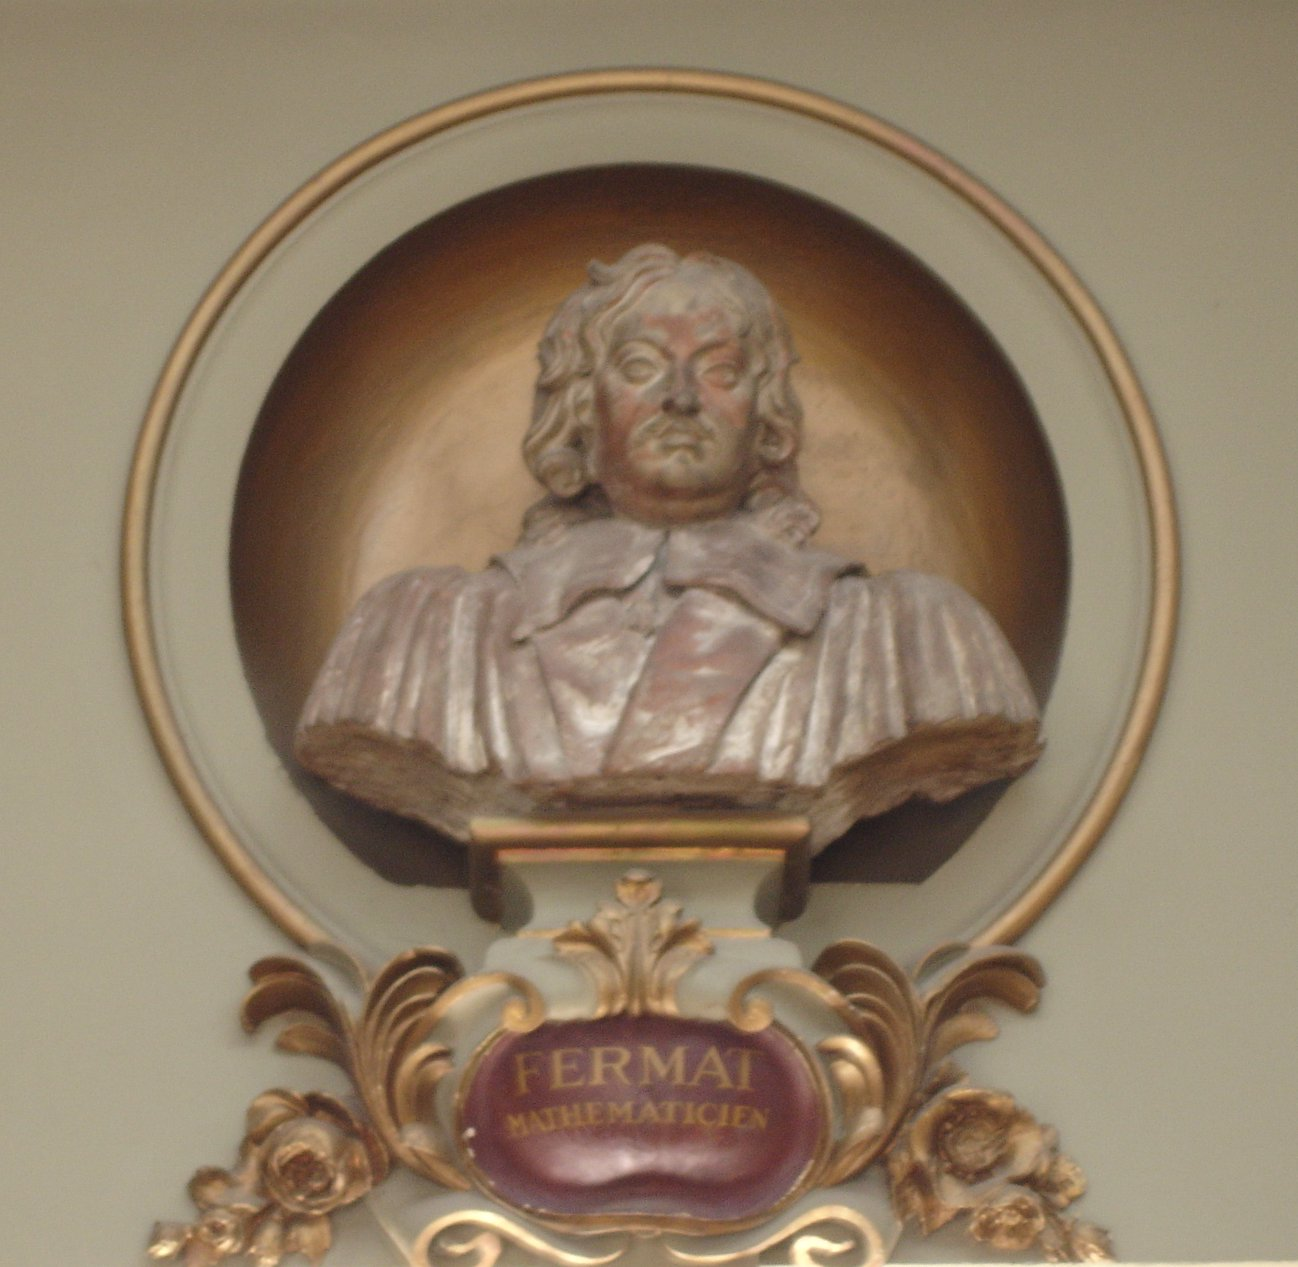 A bust of Pierre de Fermat, in the Capitole in Toulouse